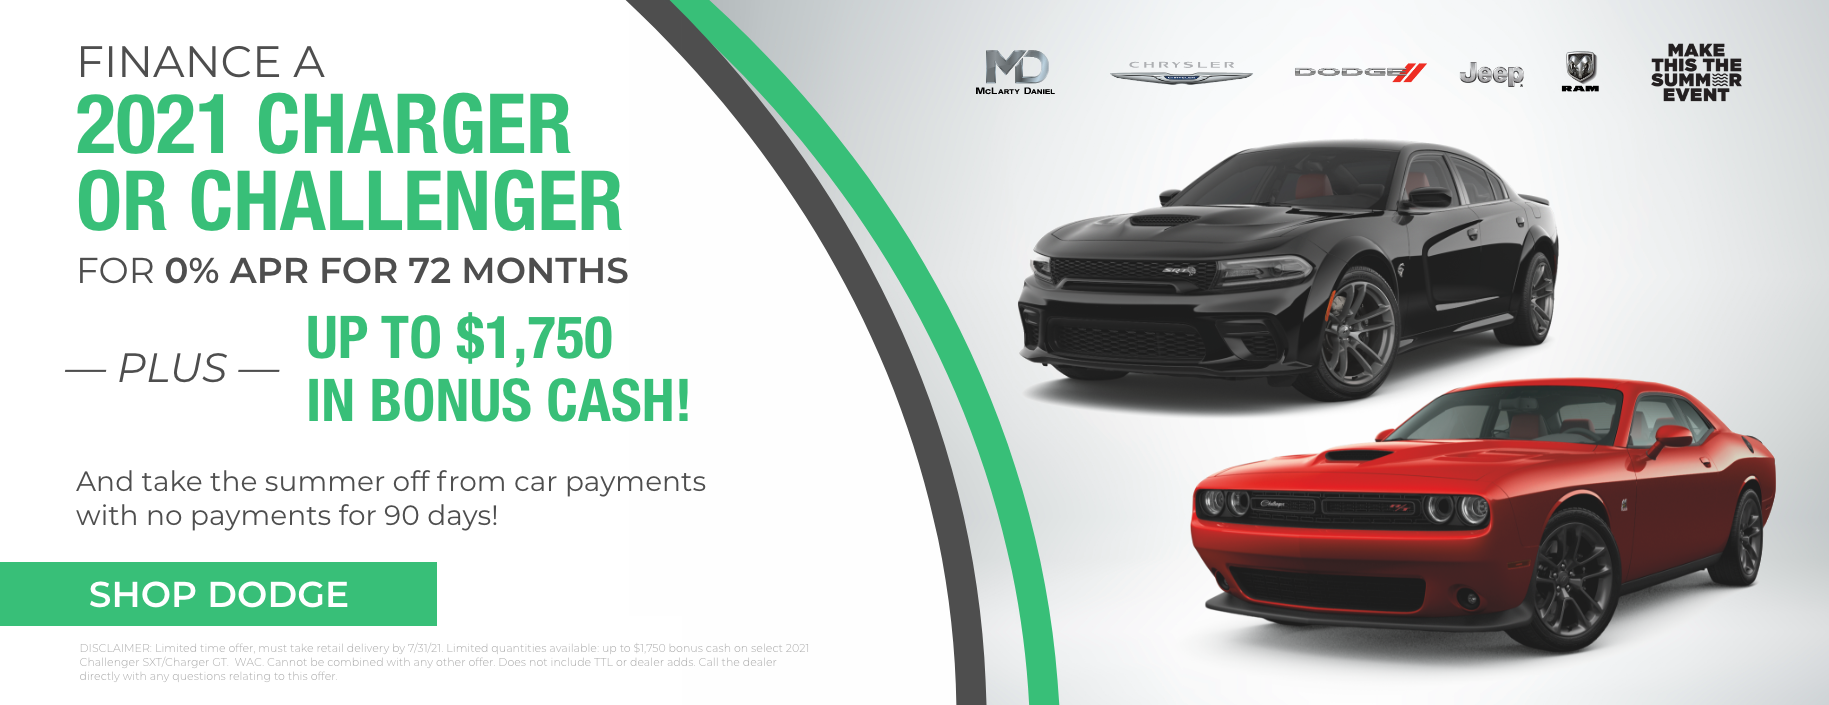 Finance a 2021 Charger or Challenger for 0% APR for 72 months plus up to $1,750 bonus cash! And take the summer off from car payments with no payments for 90 days!